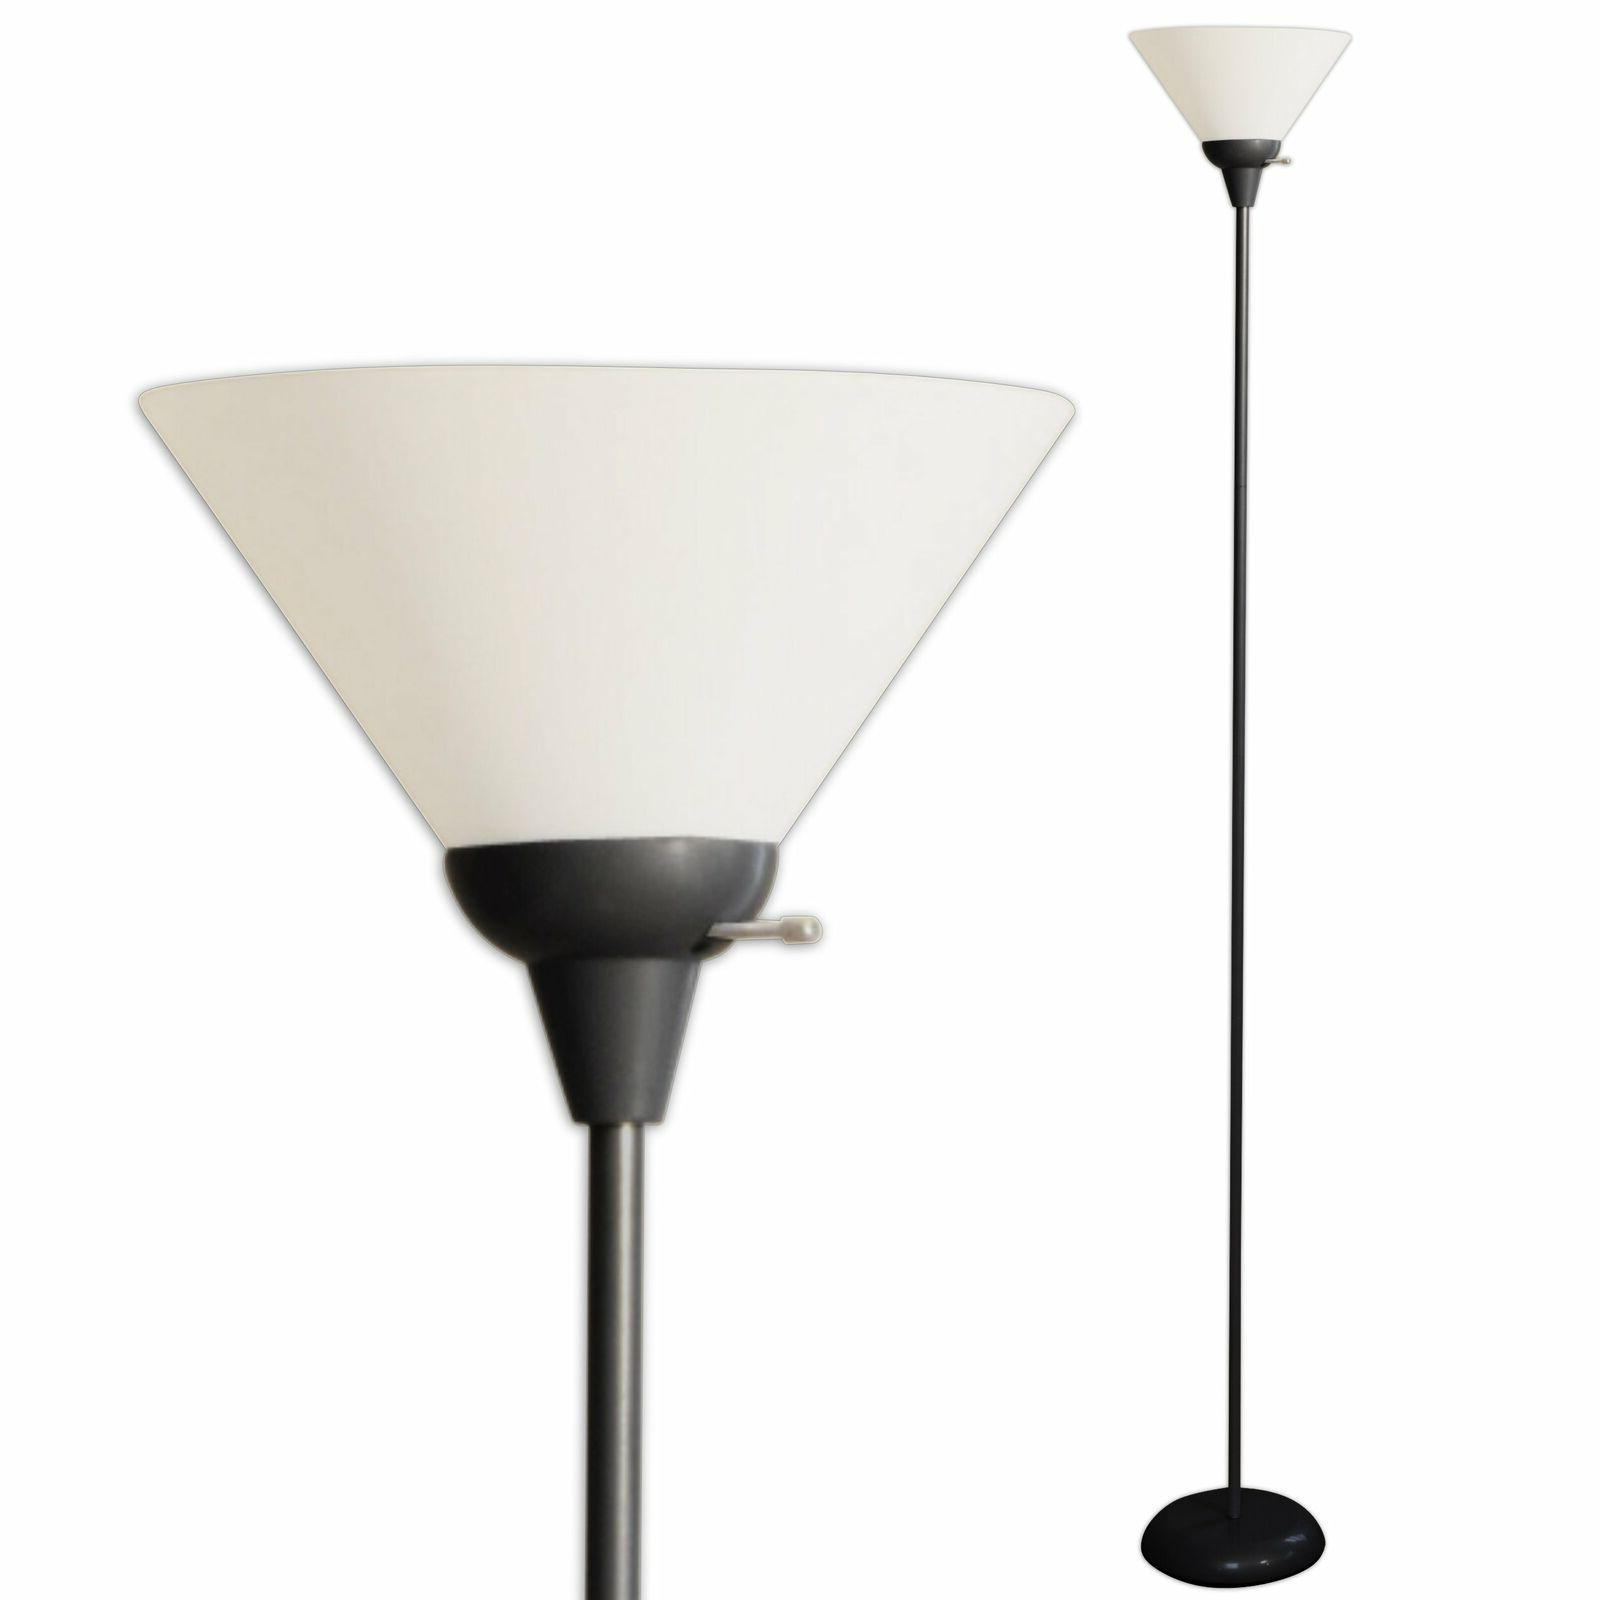 Light Lamp with